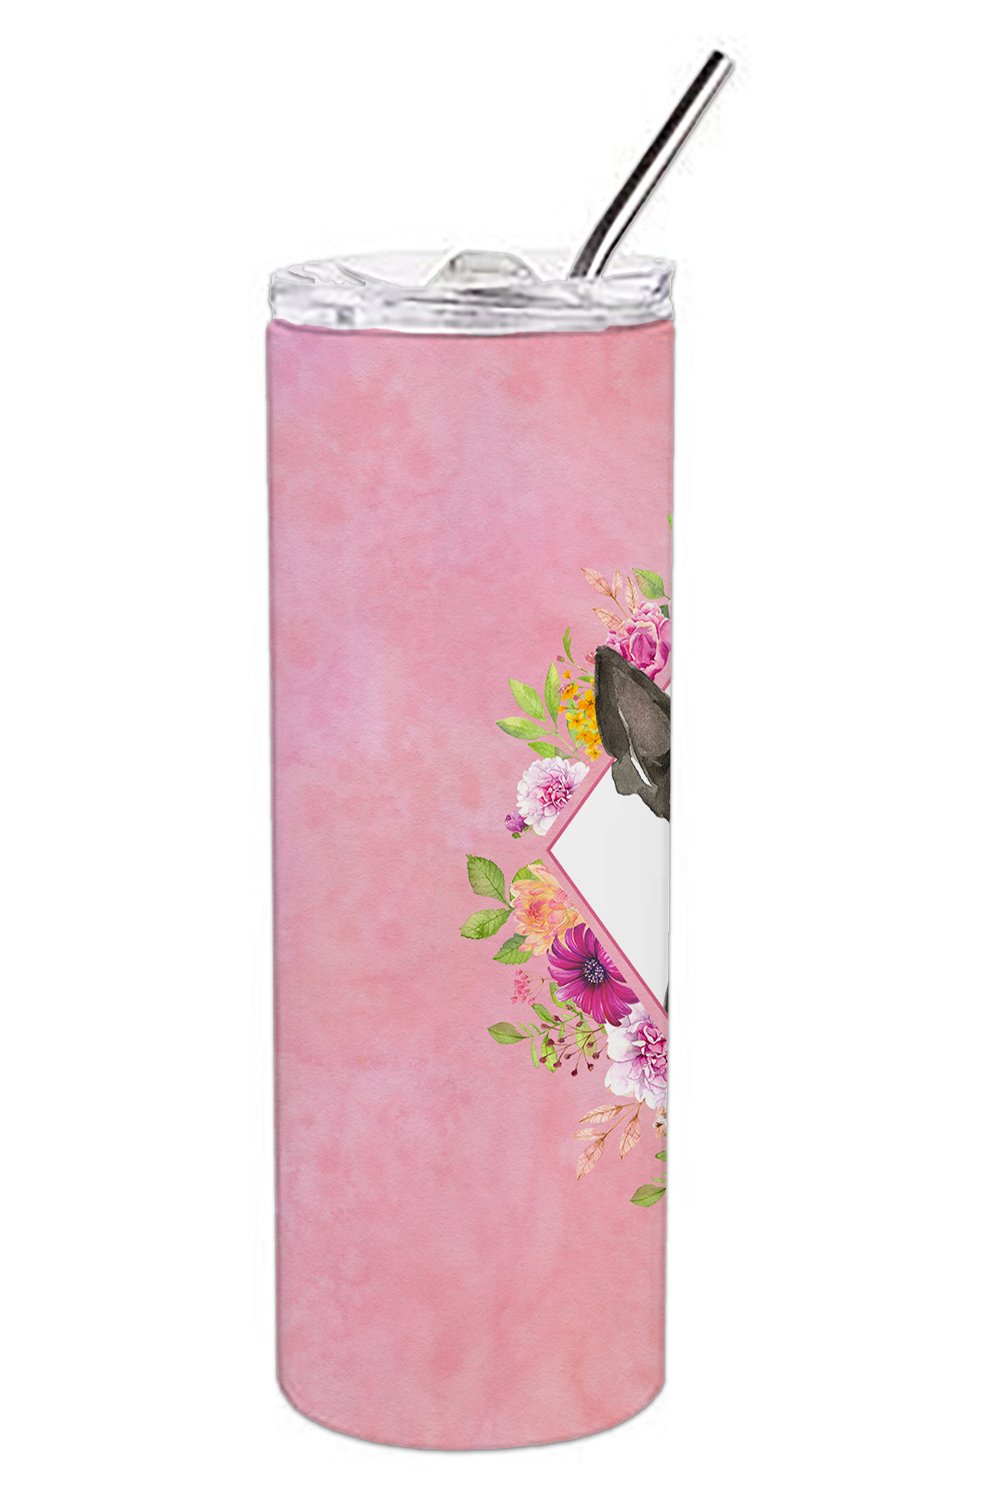 Boston Terrier Pink Flowers Double Walled Stainless Steel 20 oz Skinny Tumbler CK4257TBL20 by Caroline's Treasures